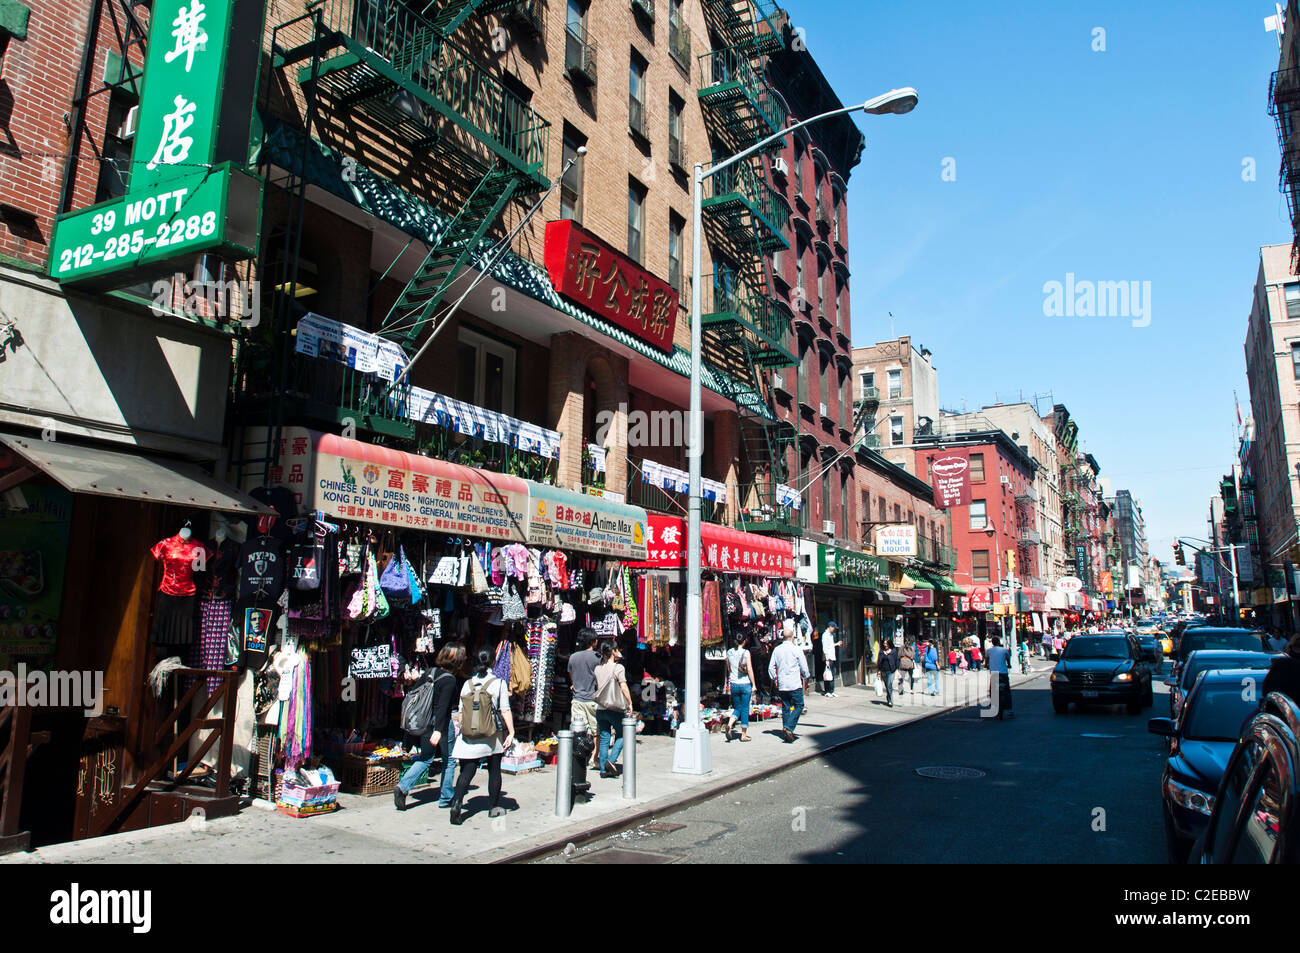 Busy street with shops and Chinese script signs, Chinatown, Manhattan, New York City, USA - Stock Image